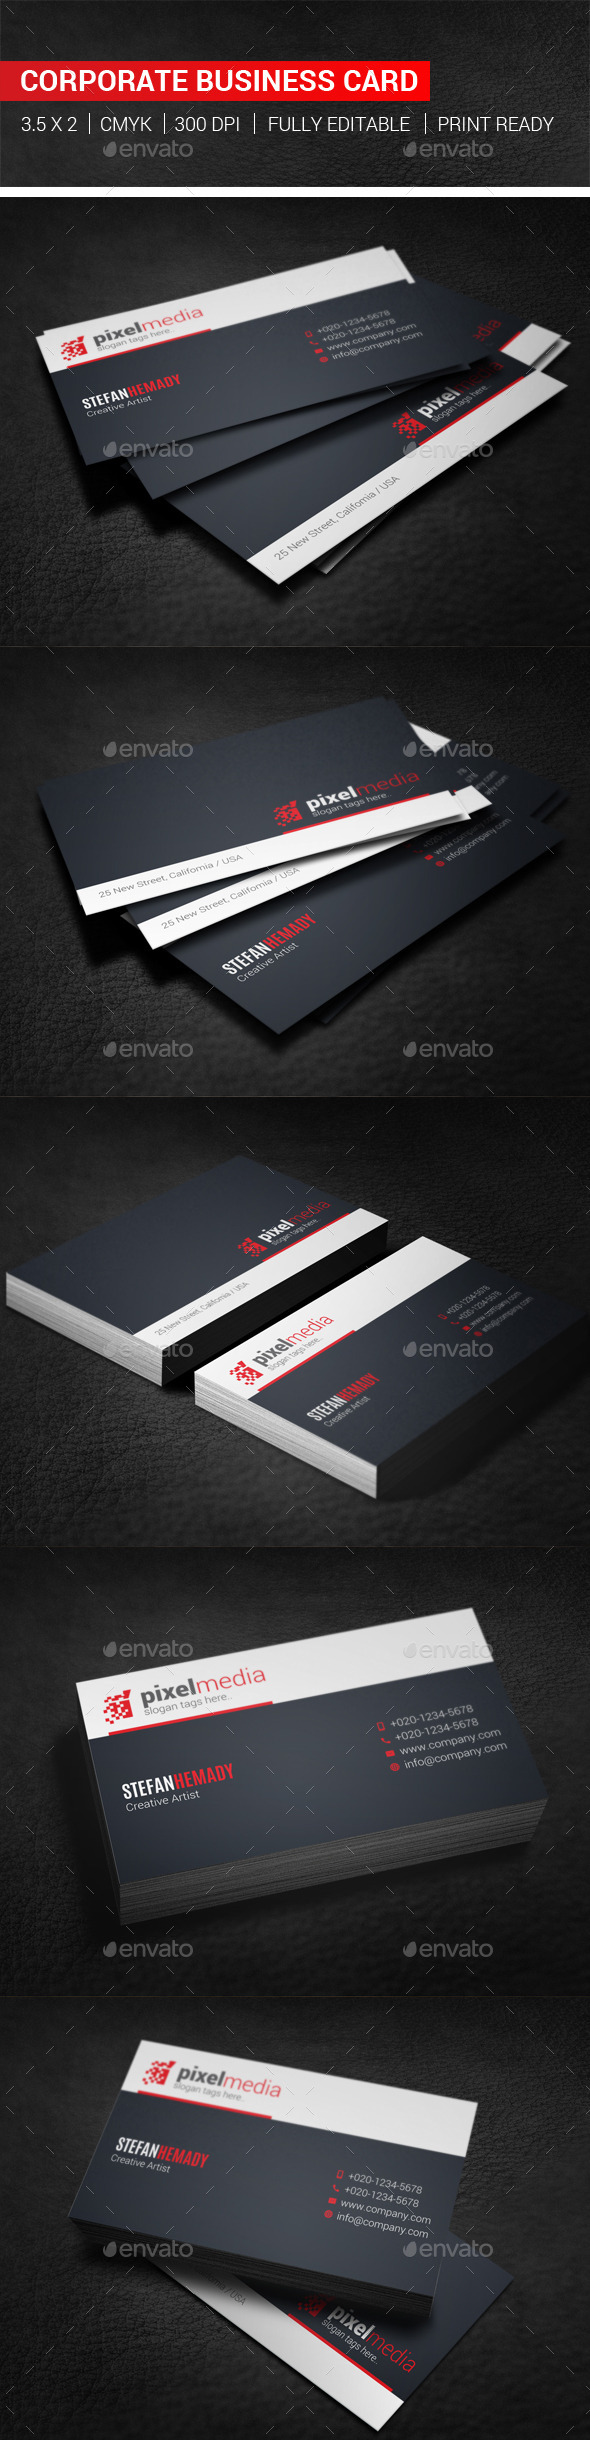 GraphicRiver Corporate Business Card 10243136